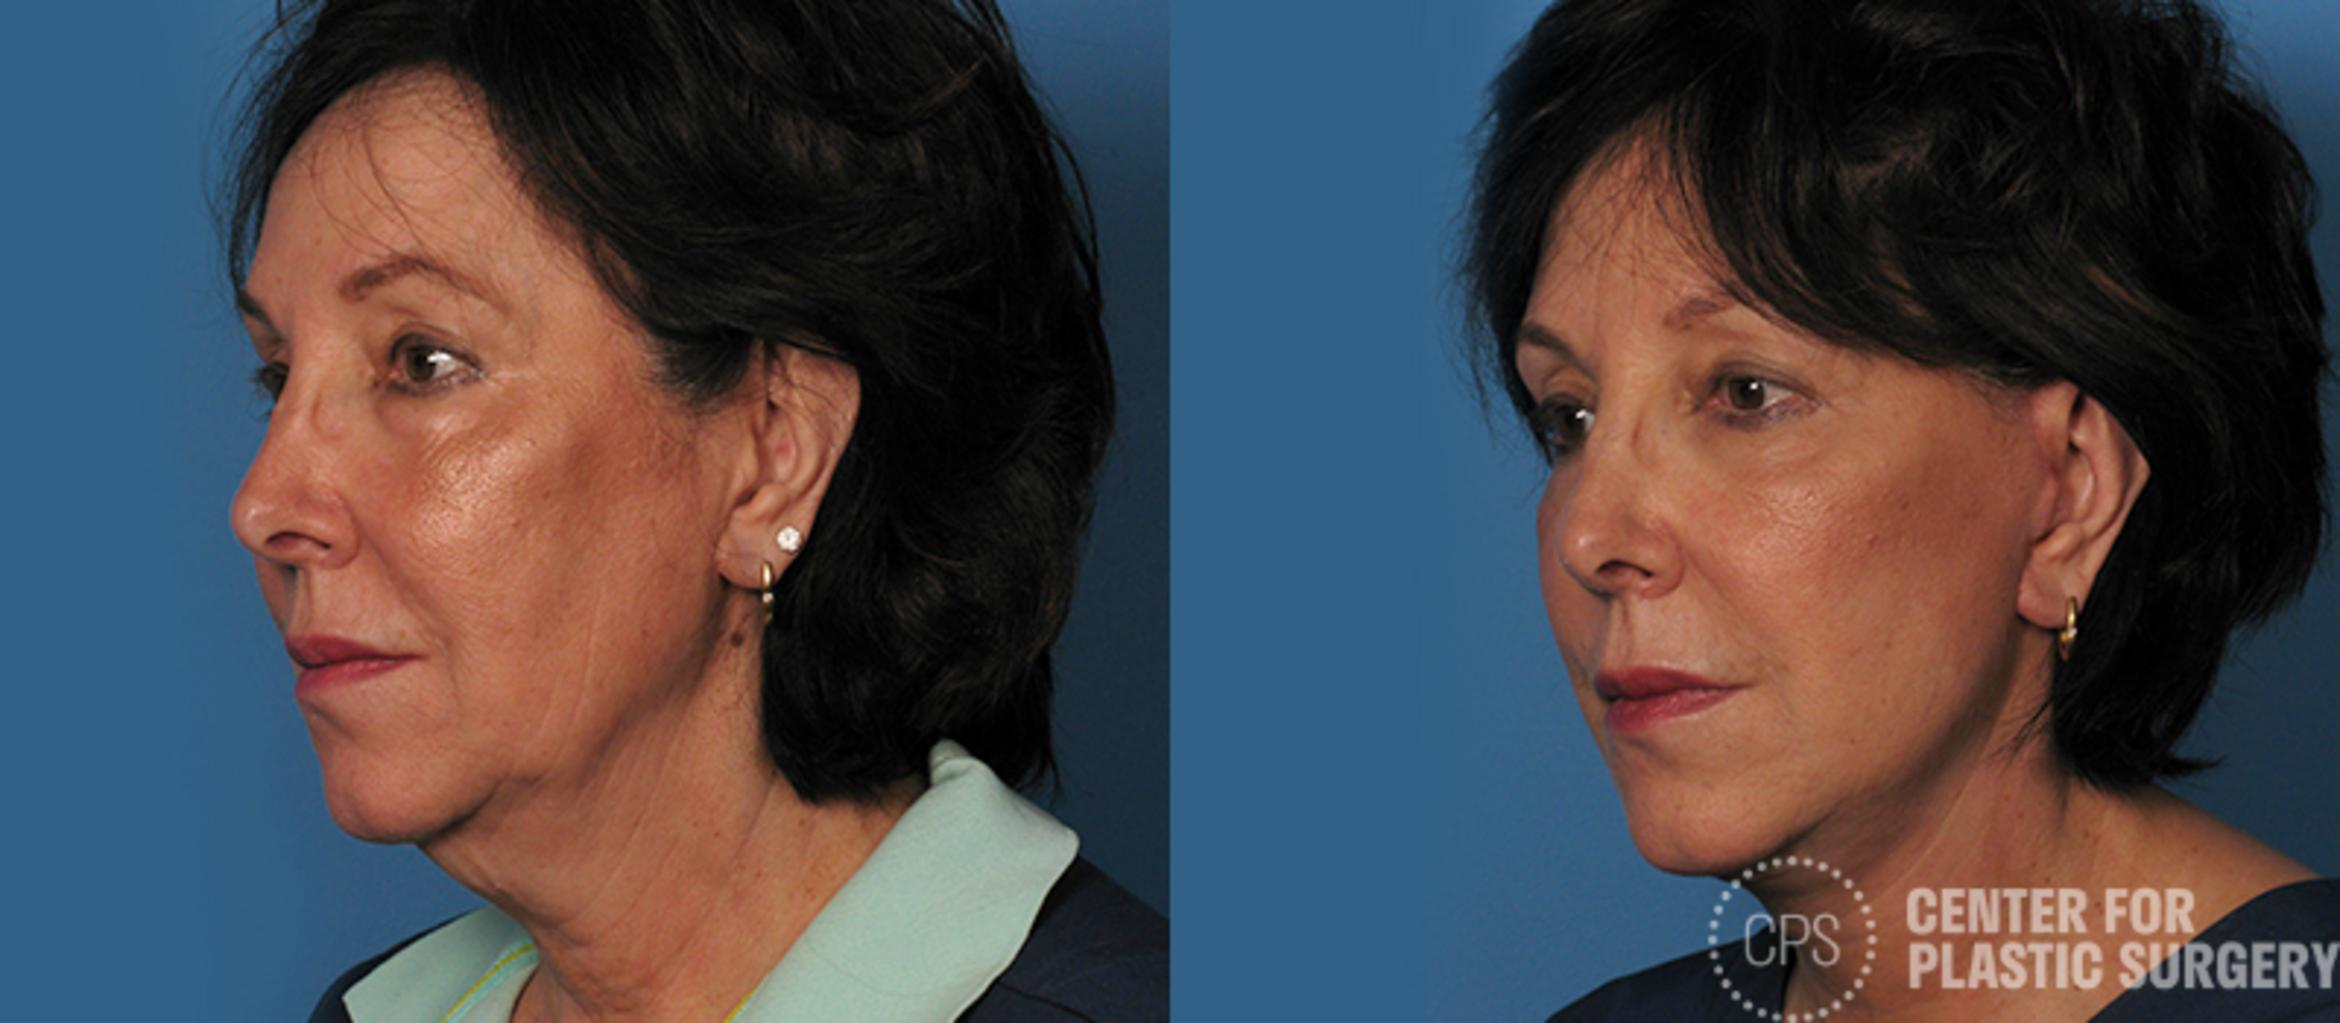 Facelift Case 4 Before & After Left Oblique | Annandale, VA & Chevy Chase, MD, Washington D.C. Metropolitan Area | Center for Plastic Surgery